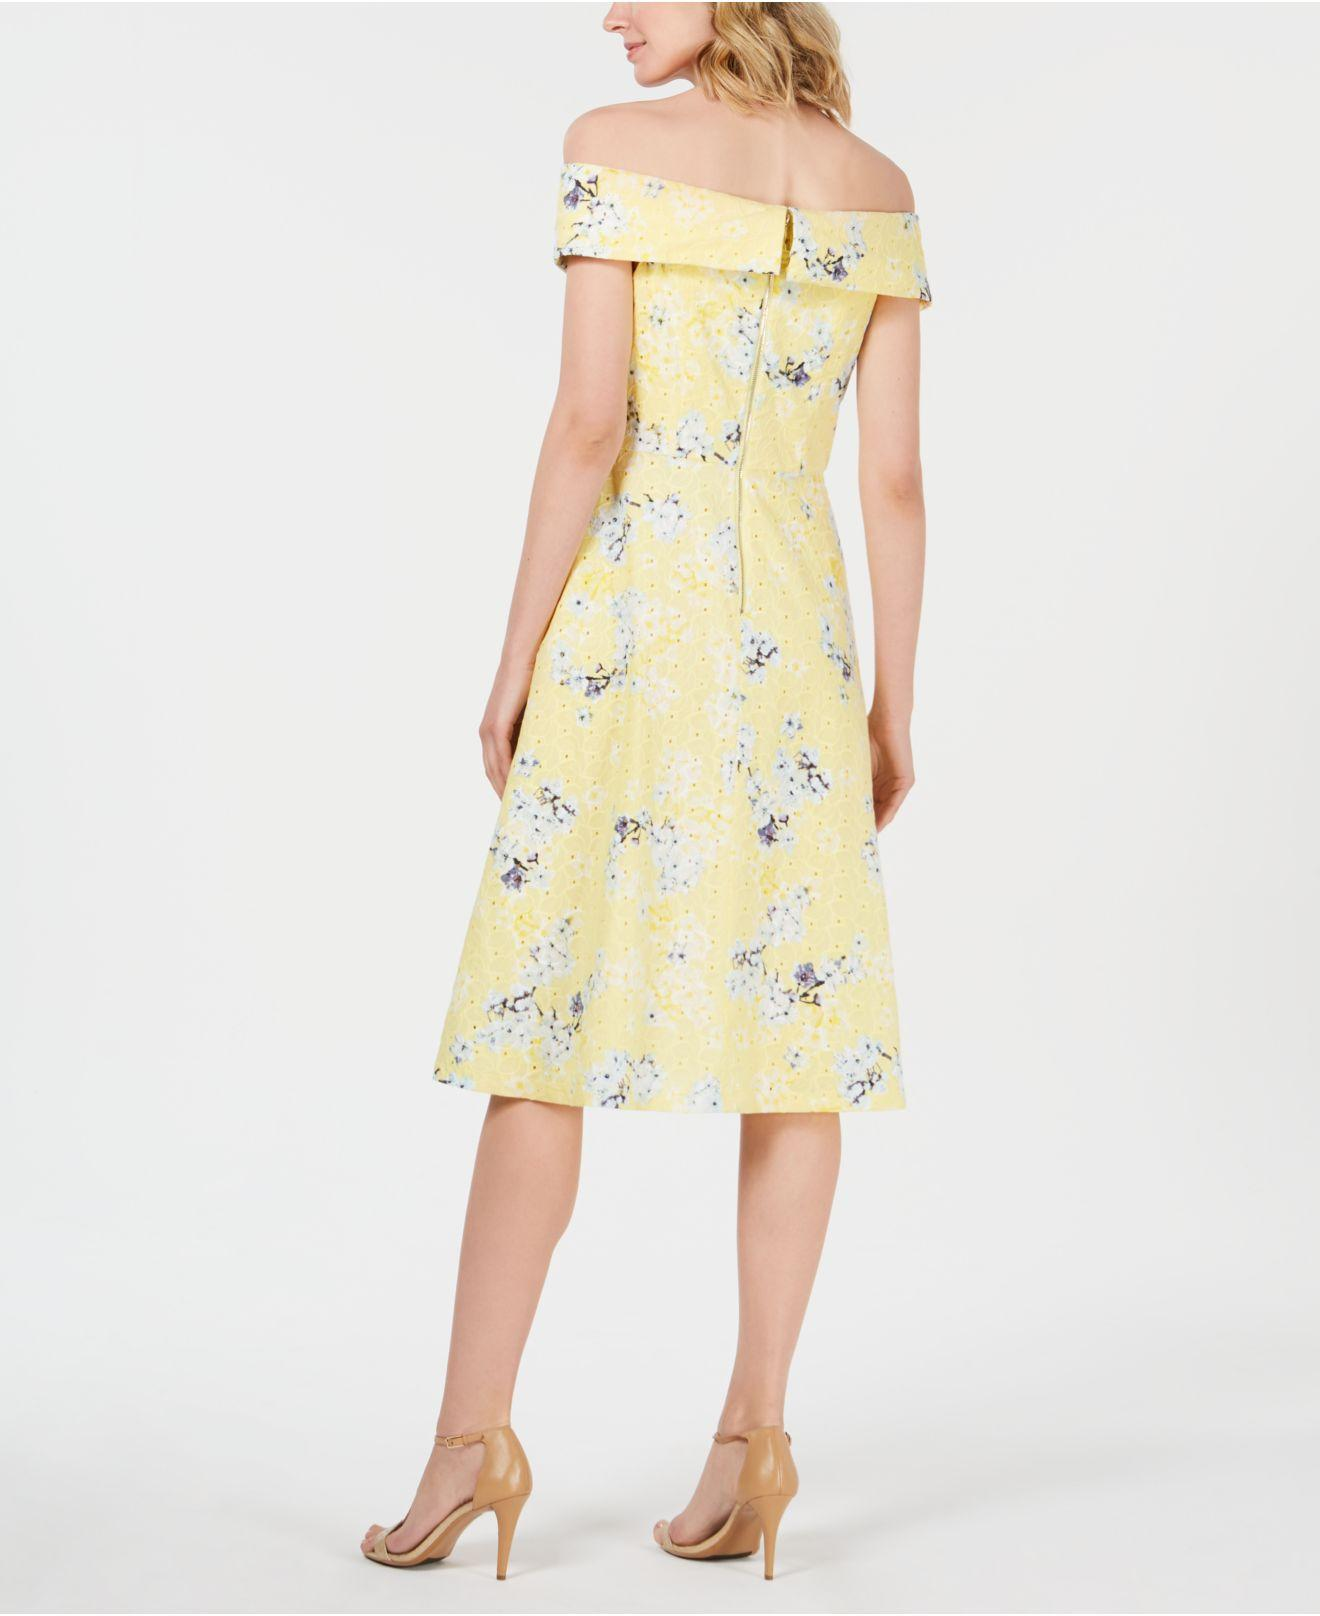 88dfbb8775 Lyst - Calvin Klein Off-the-shoulder Printed Eyelet Dress in Yellow - Save  16%